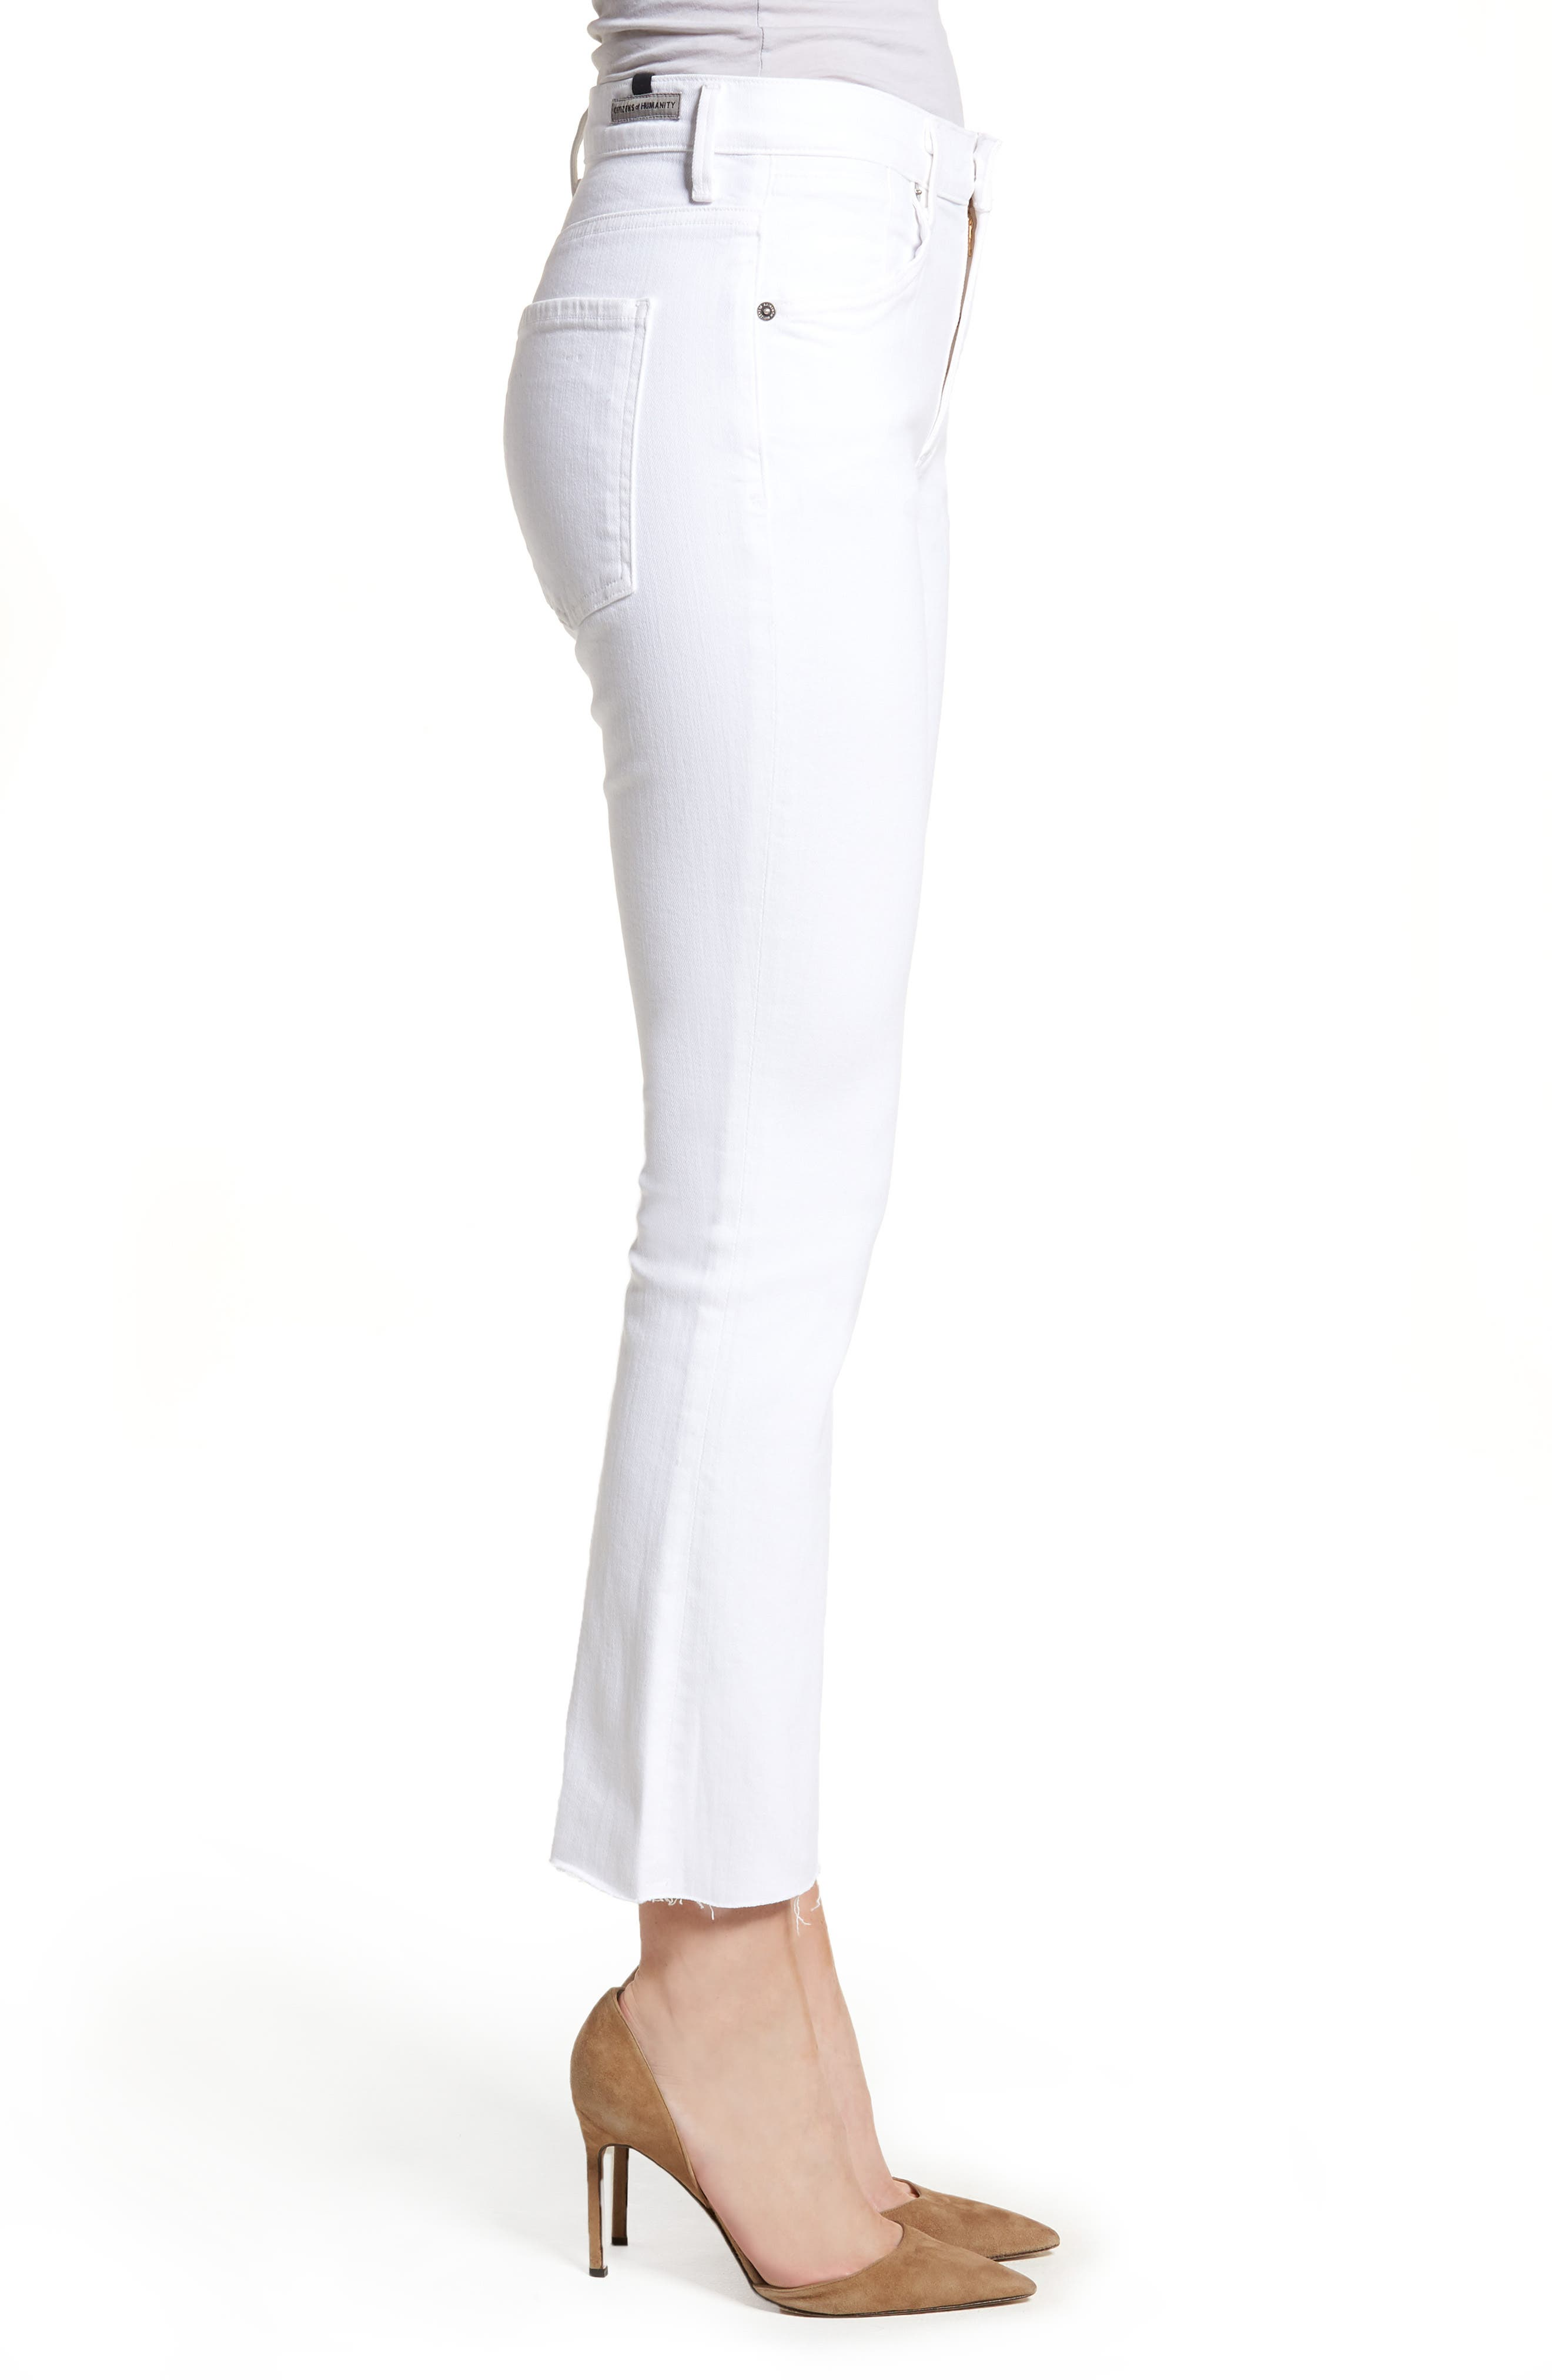 CITIZENS OF HUMANITY,                             Fleetwood Crop Straight Leg Jeans,                             Alternate thumbnail 3, color,                             104